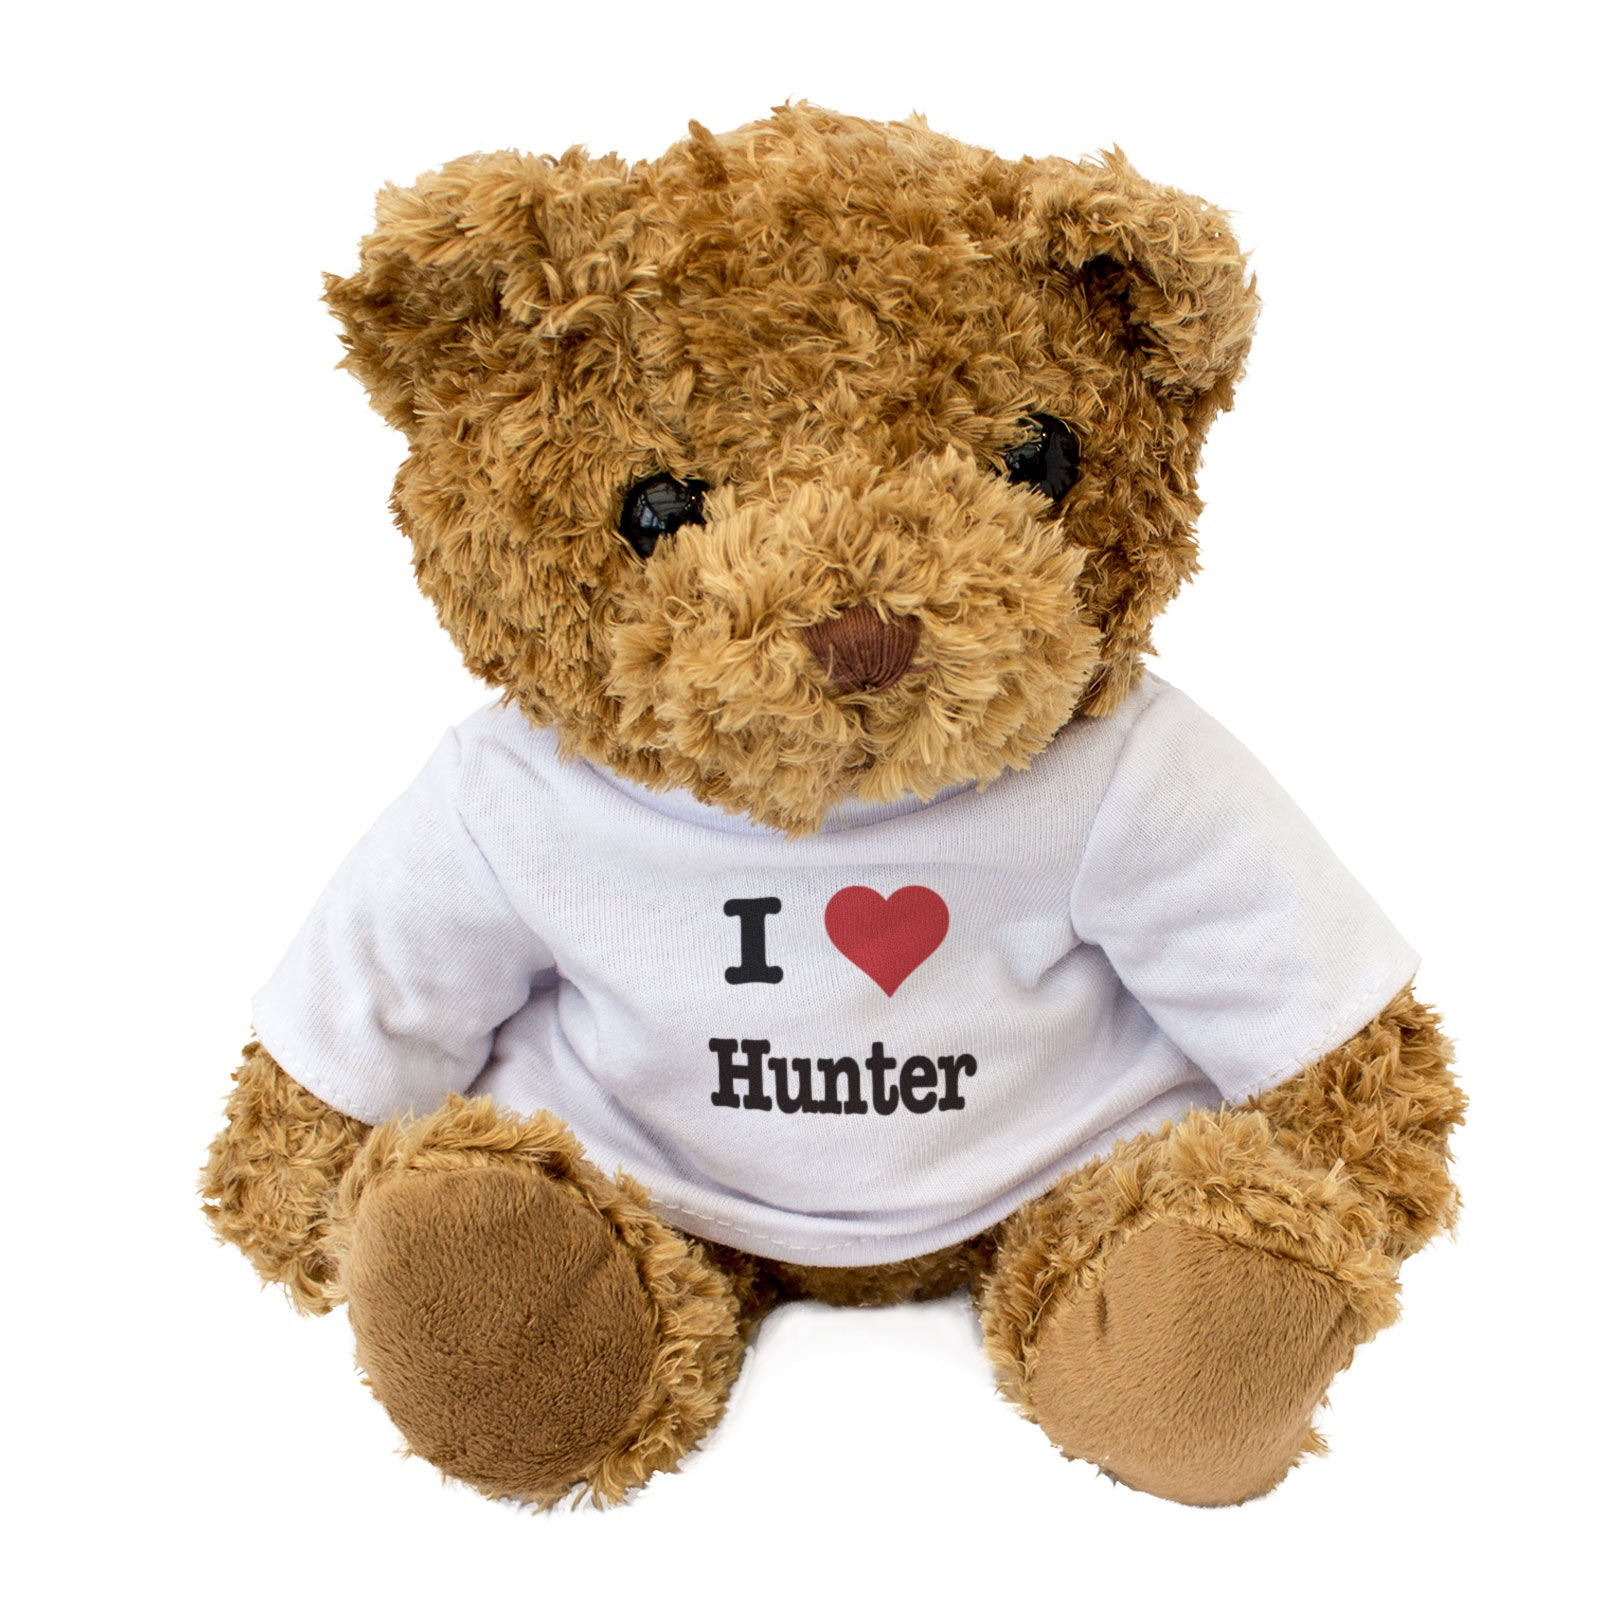 I Love Hunter - Teddy Bear